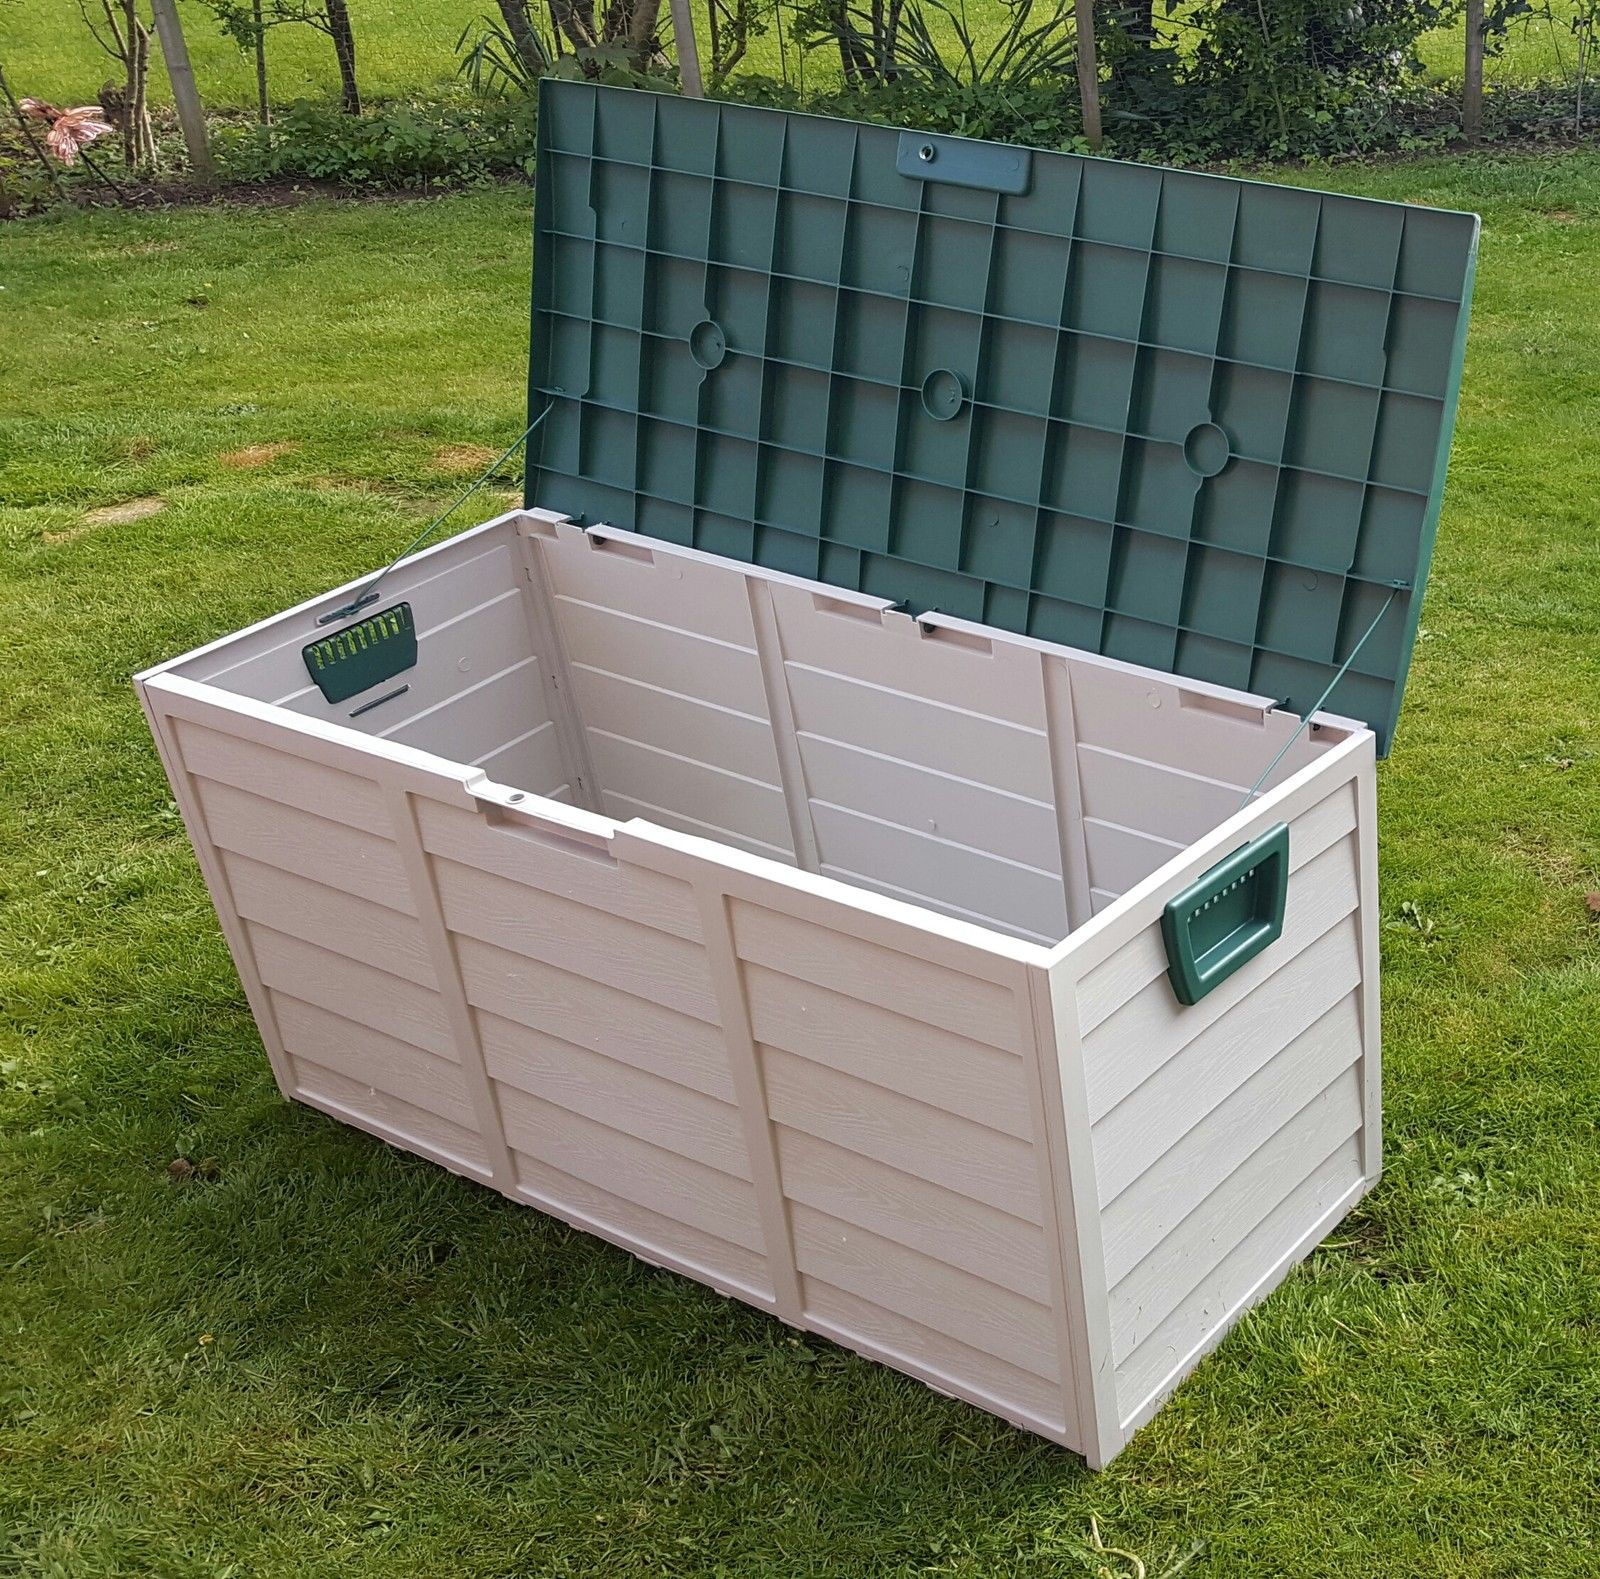 Pvc Outdoor Box : Lord of the lawn garden storage box plastic outdoor